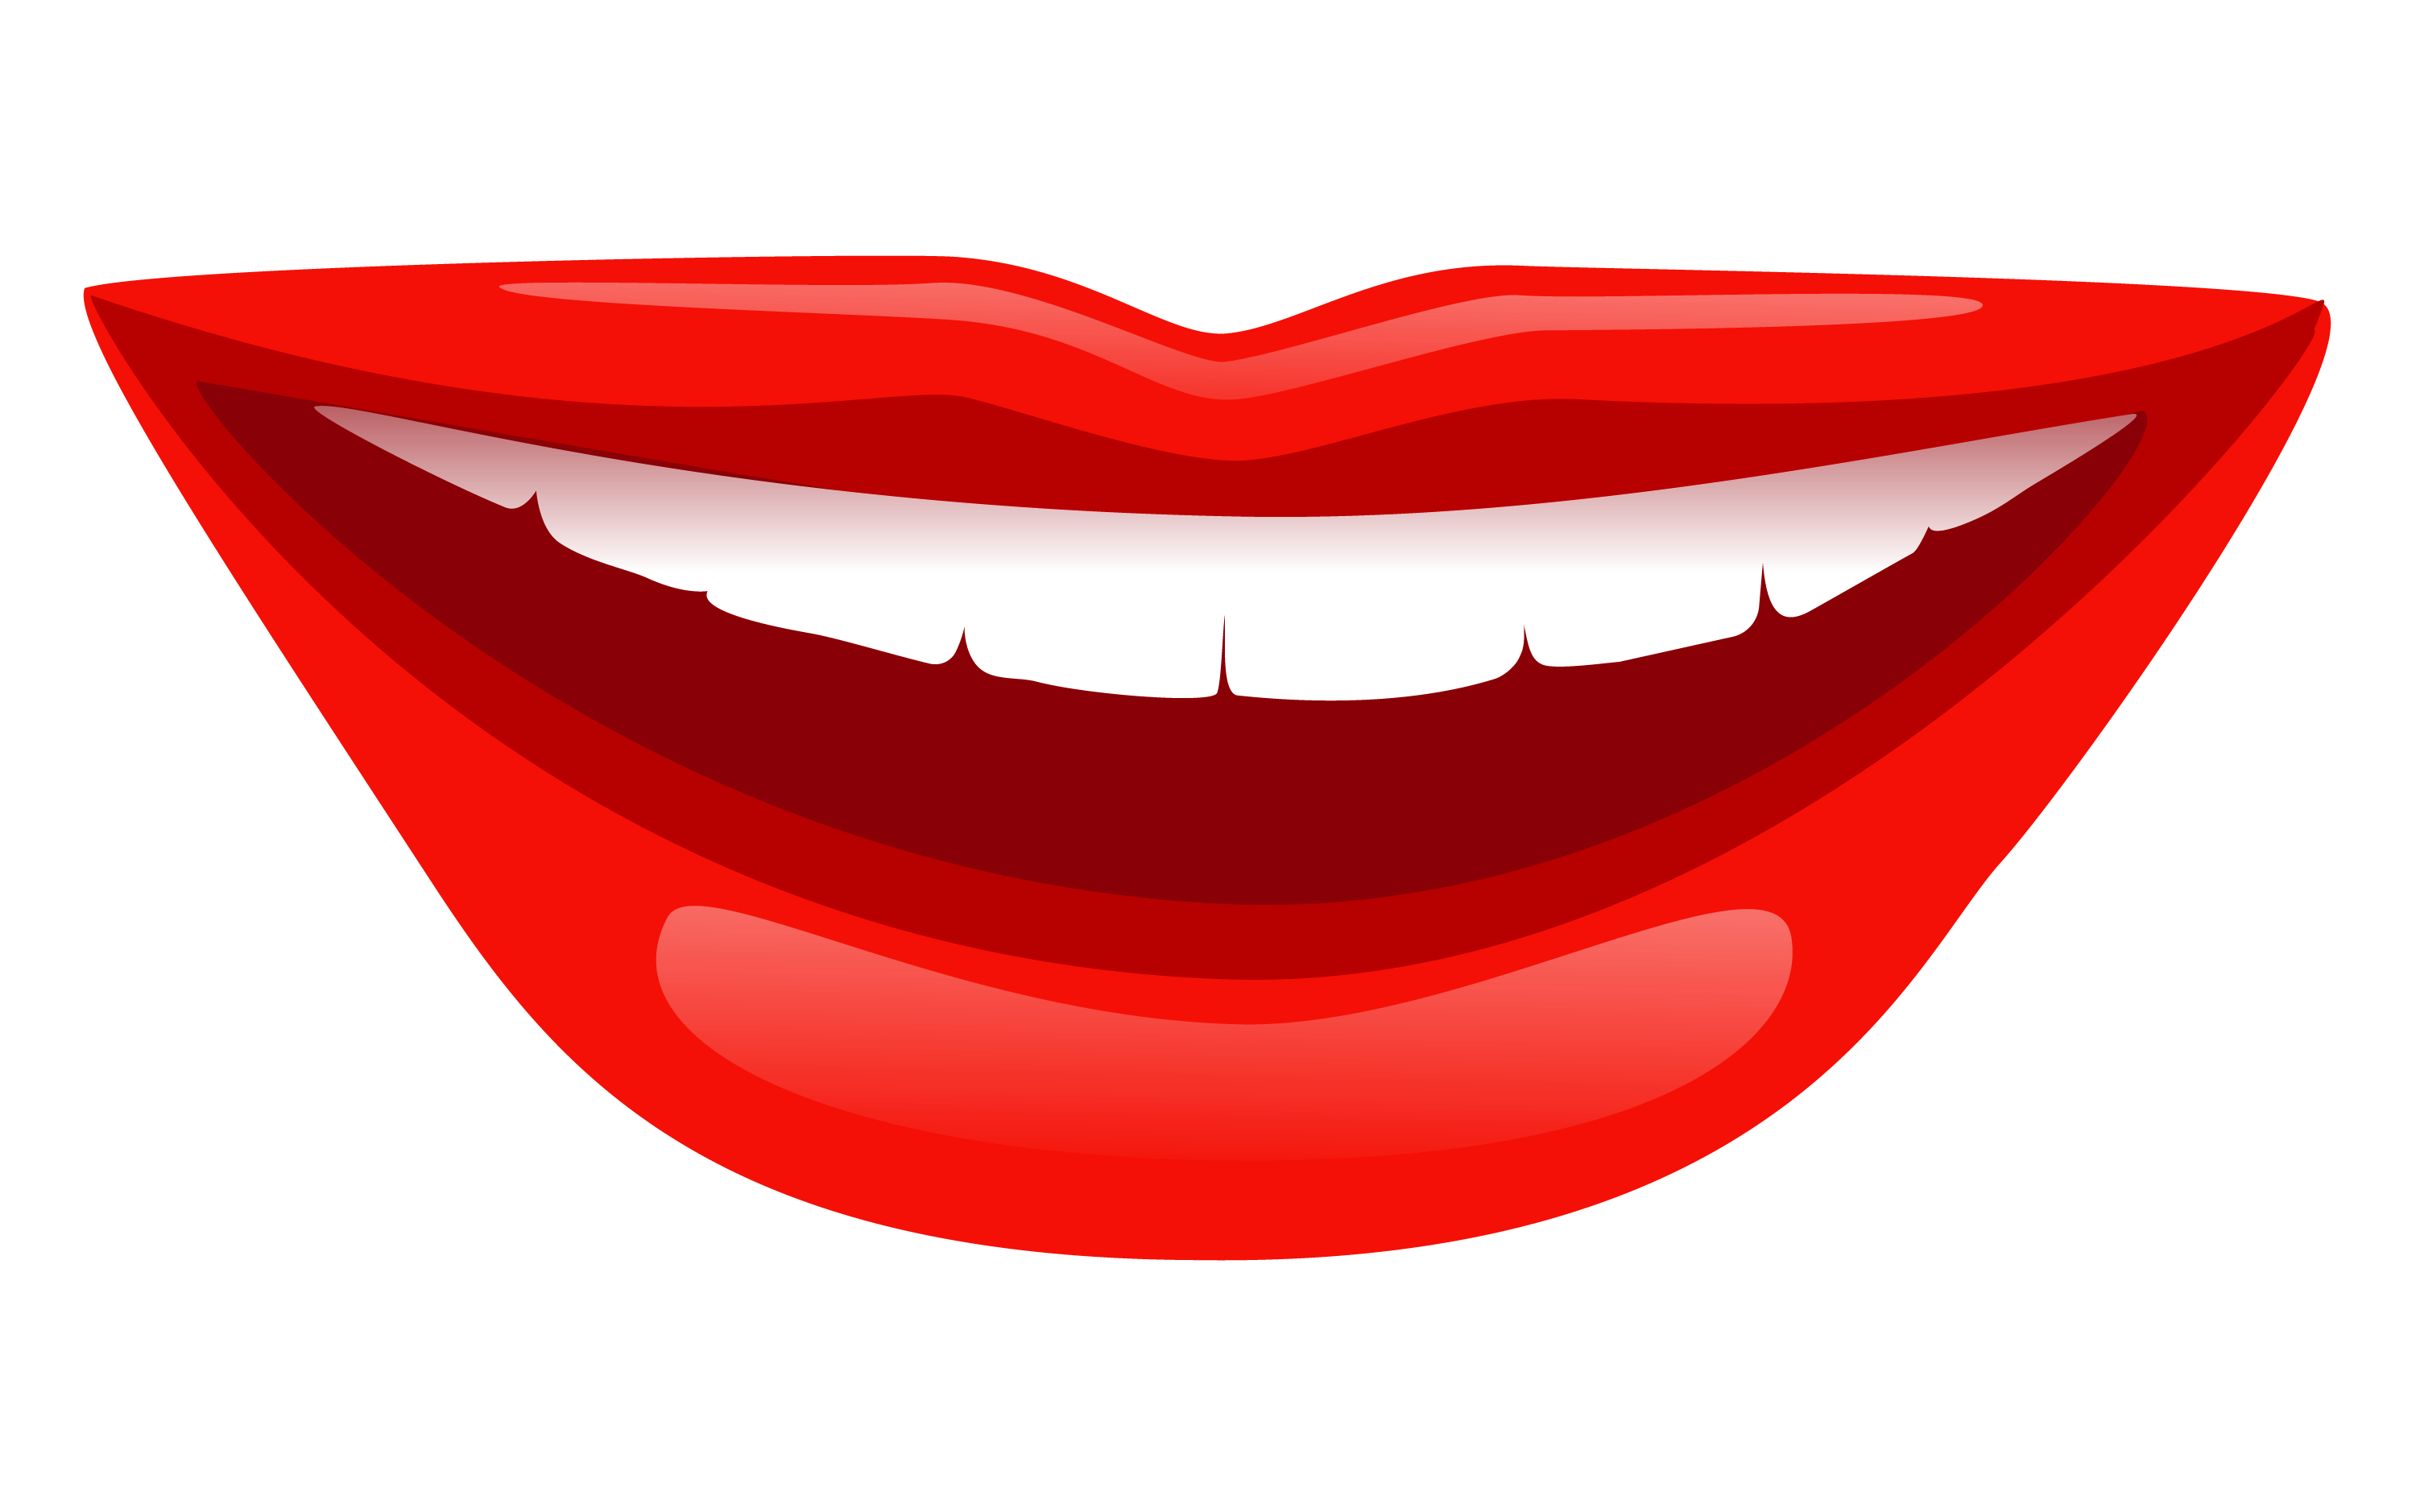 Smile Mouth Lips PNG Pic image #46524